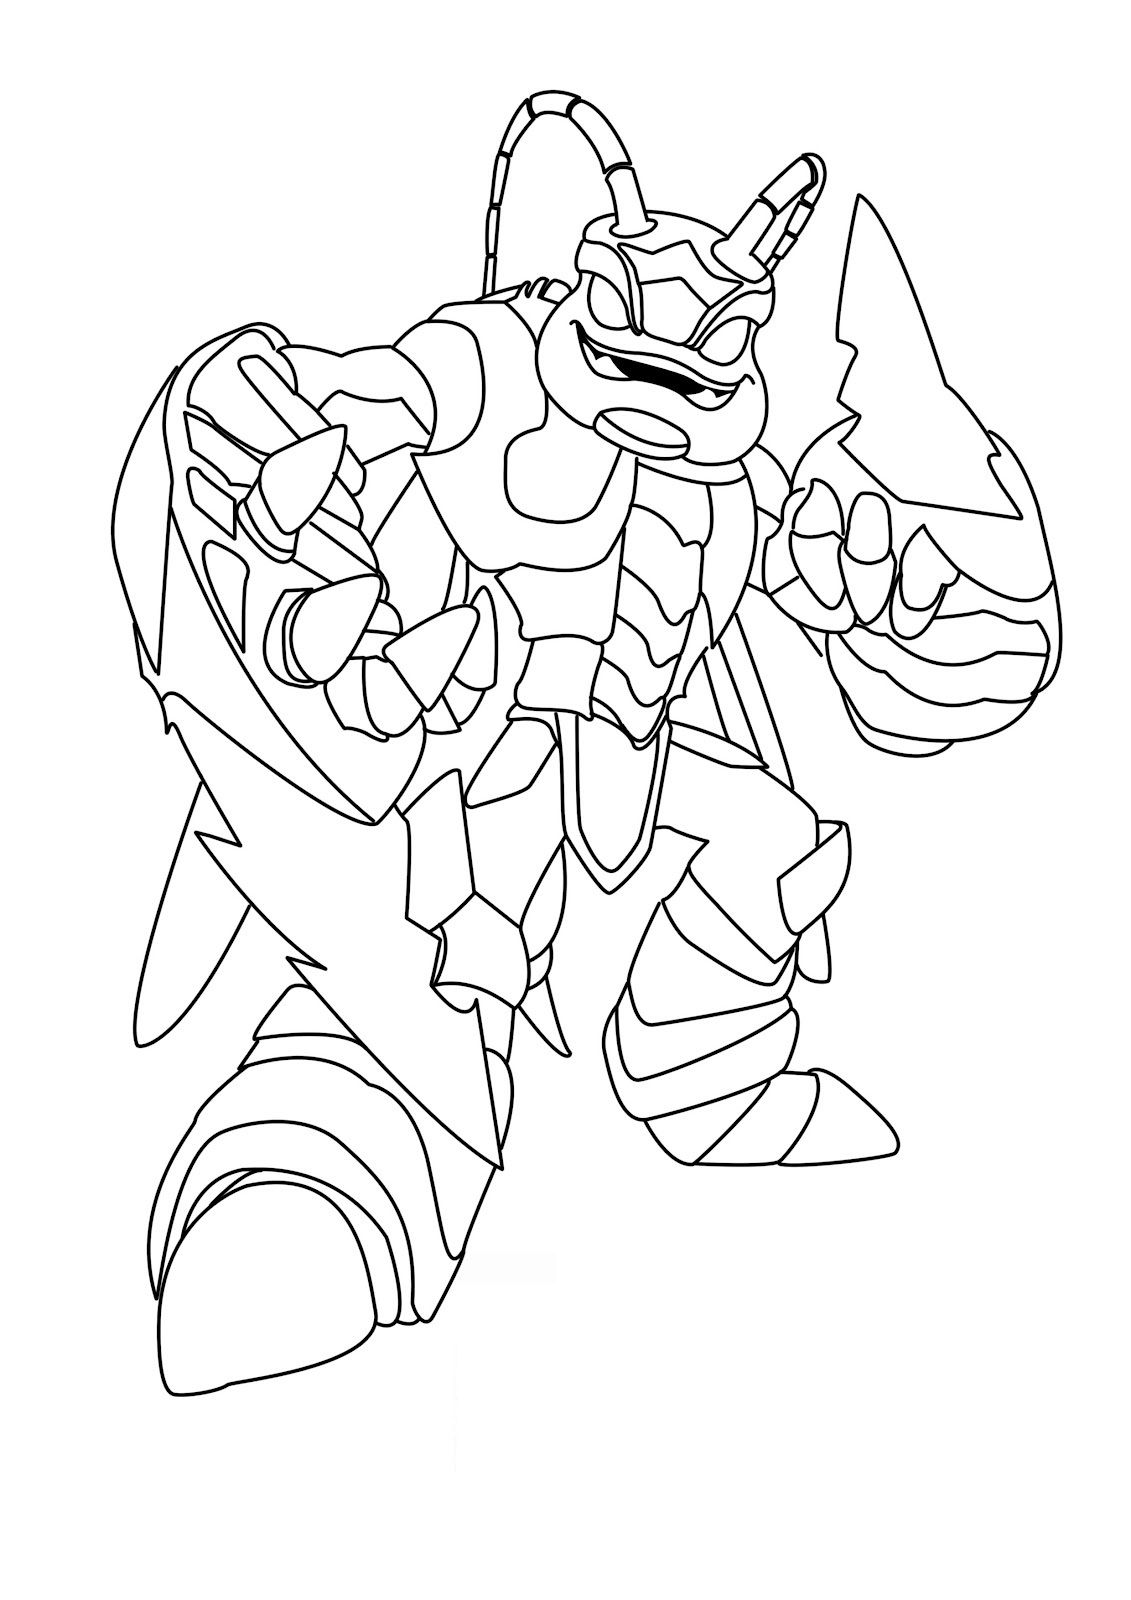 Giant Coloring Pages For S